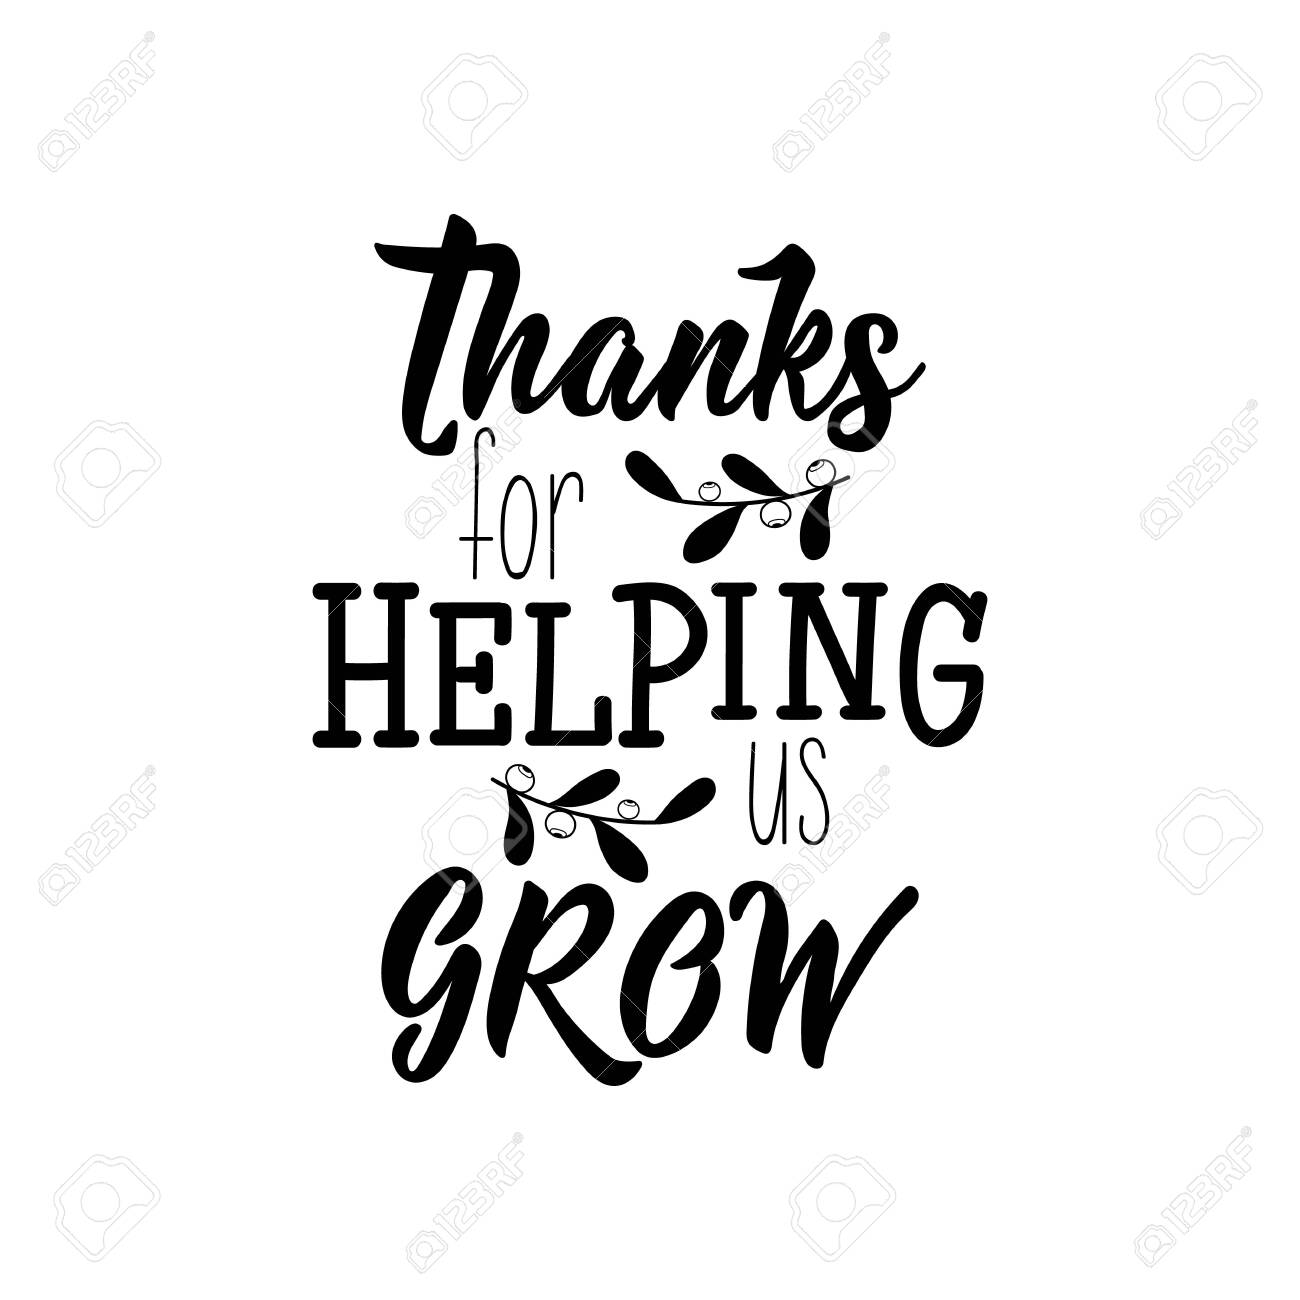 Thanks for helping us grow. Lettering. Vector illustration. Perfect design for greeting cards, posters, T-shirts, banners print invitations. - 129986967